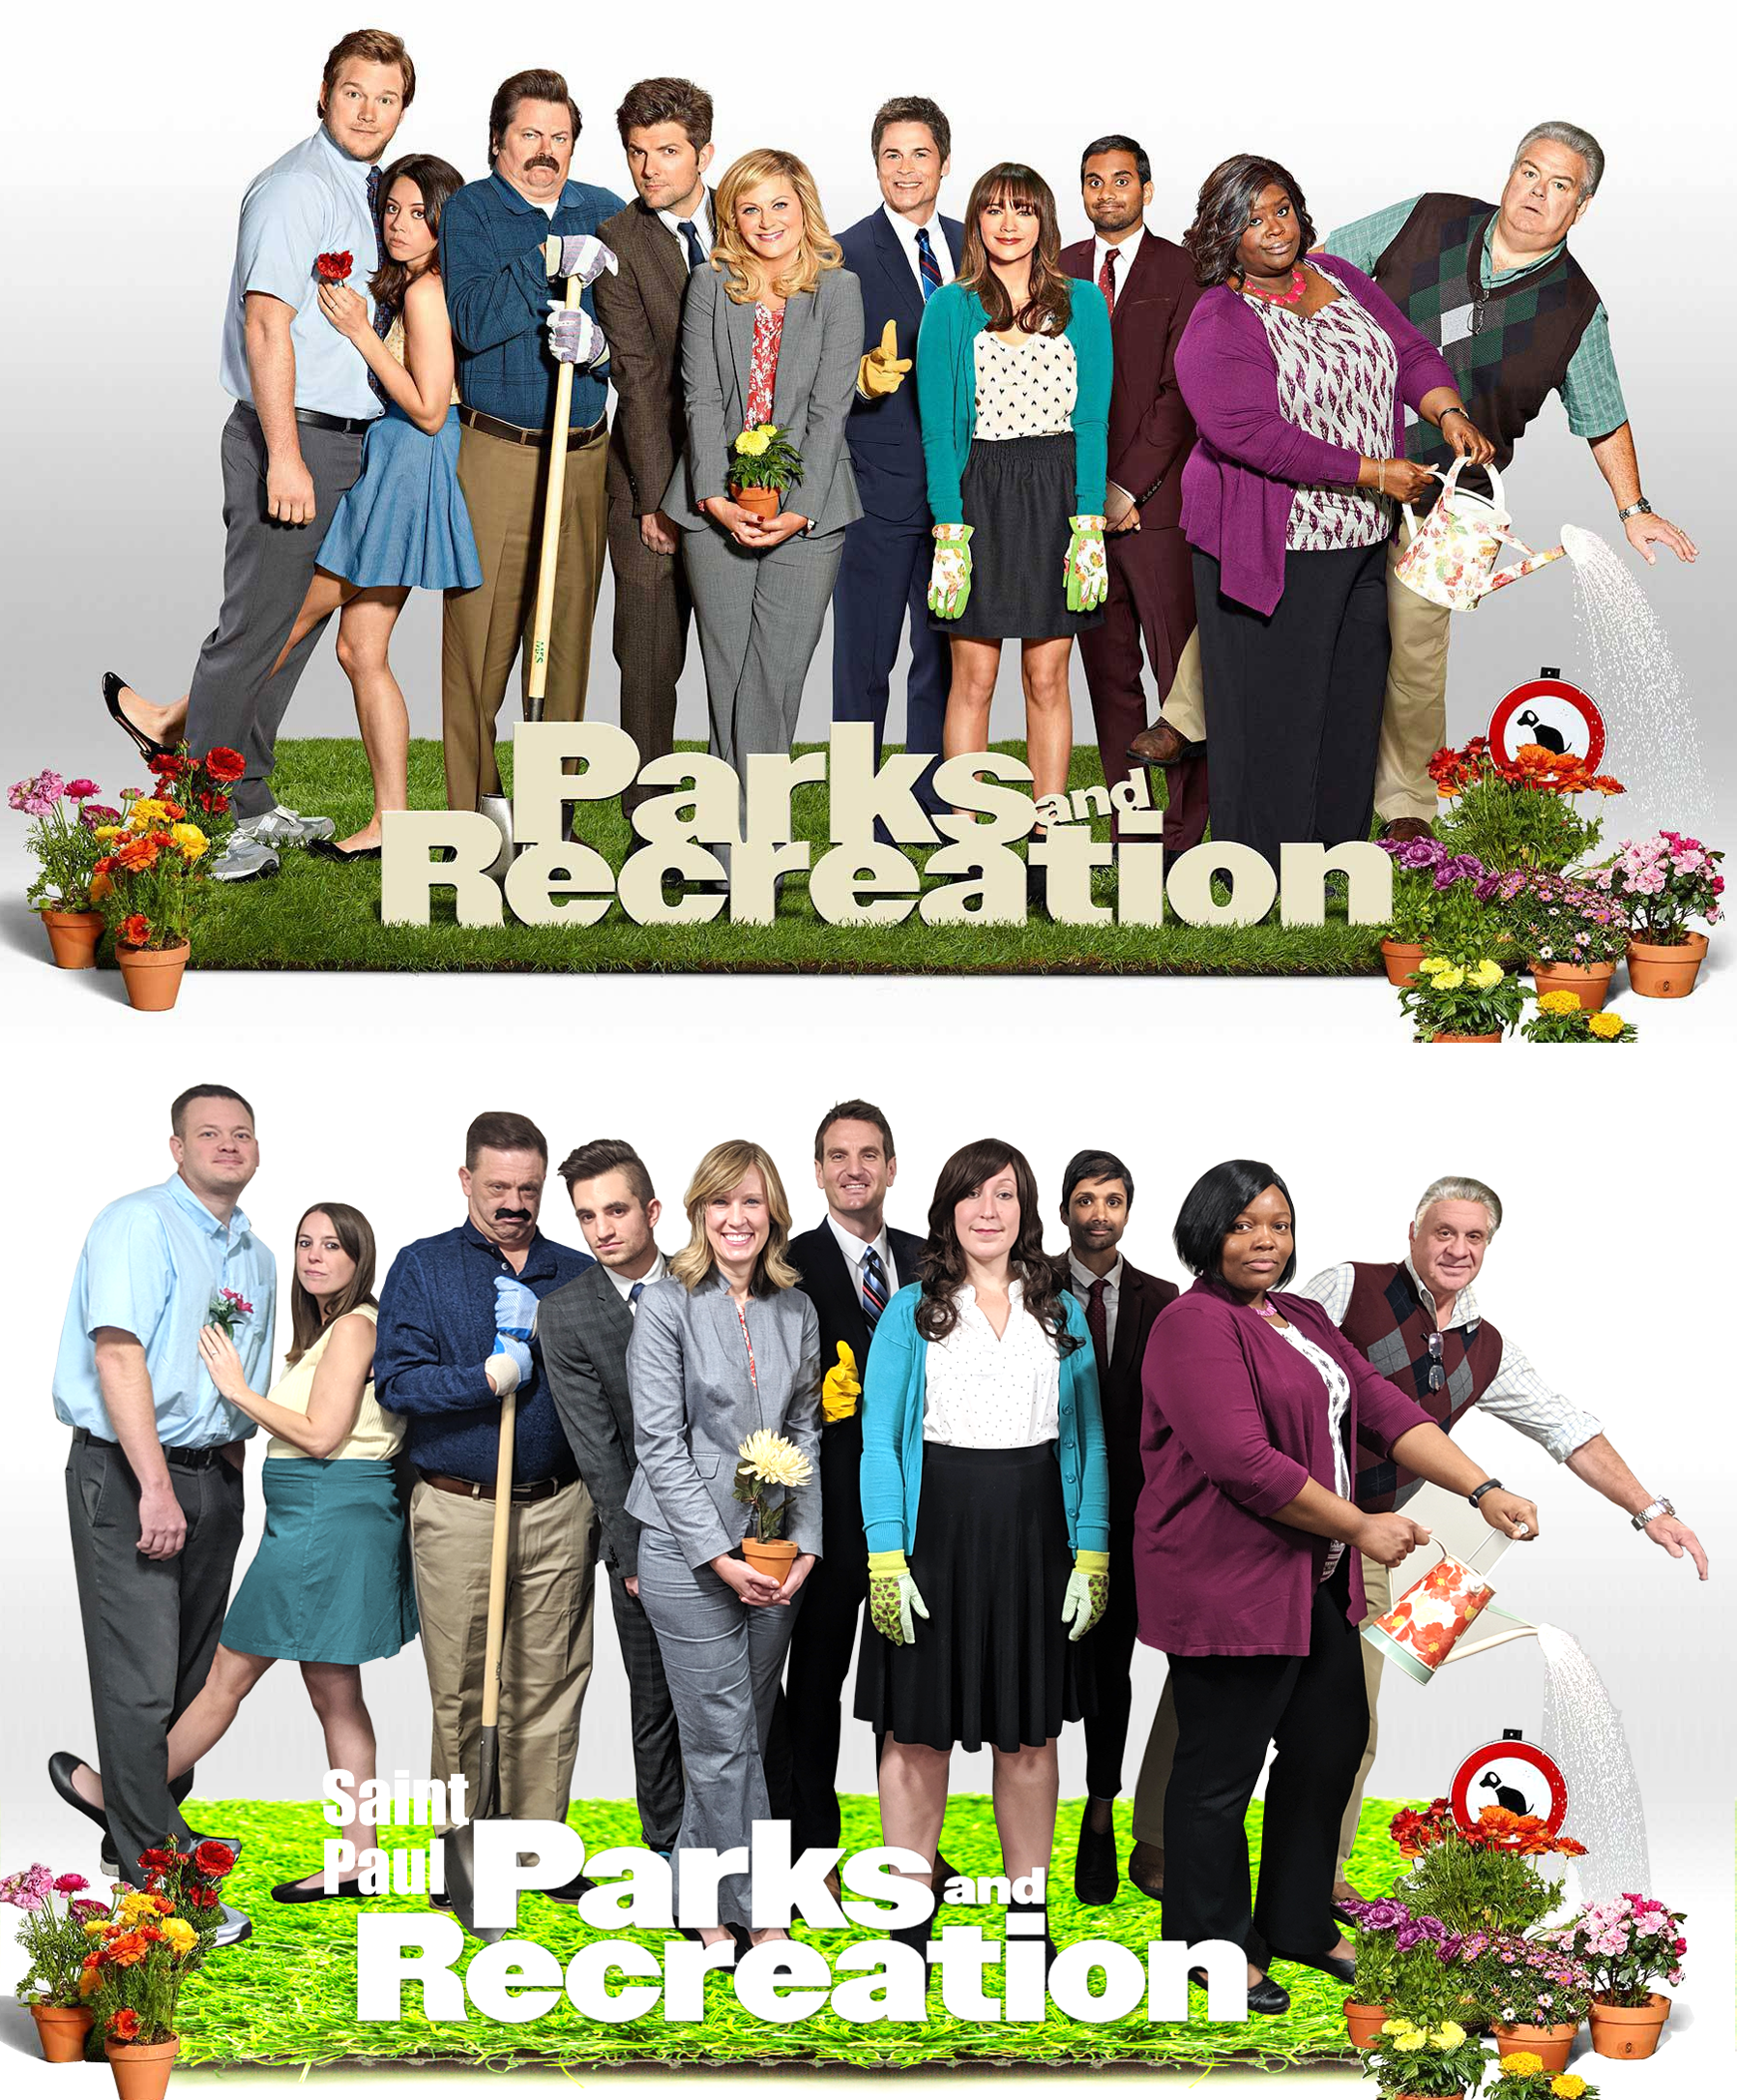 Saint Paul Parks and Recreation staff dressed up as the cast of the TV show Parks and Recreation.